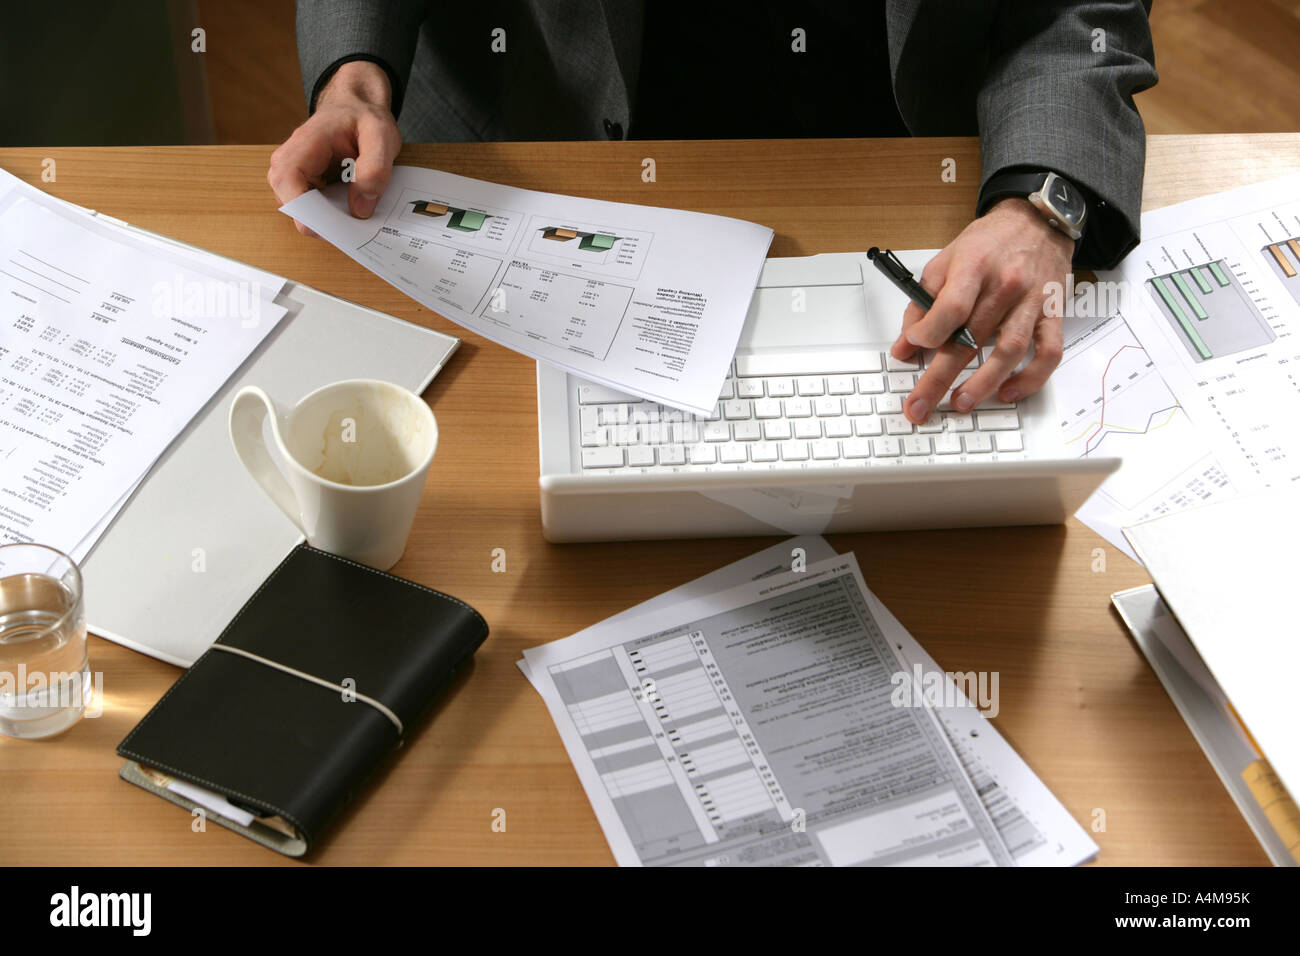 DEU Germany Man works in an office at a desk Stock Photo